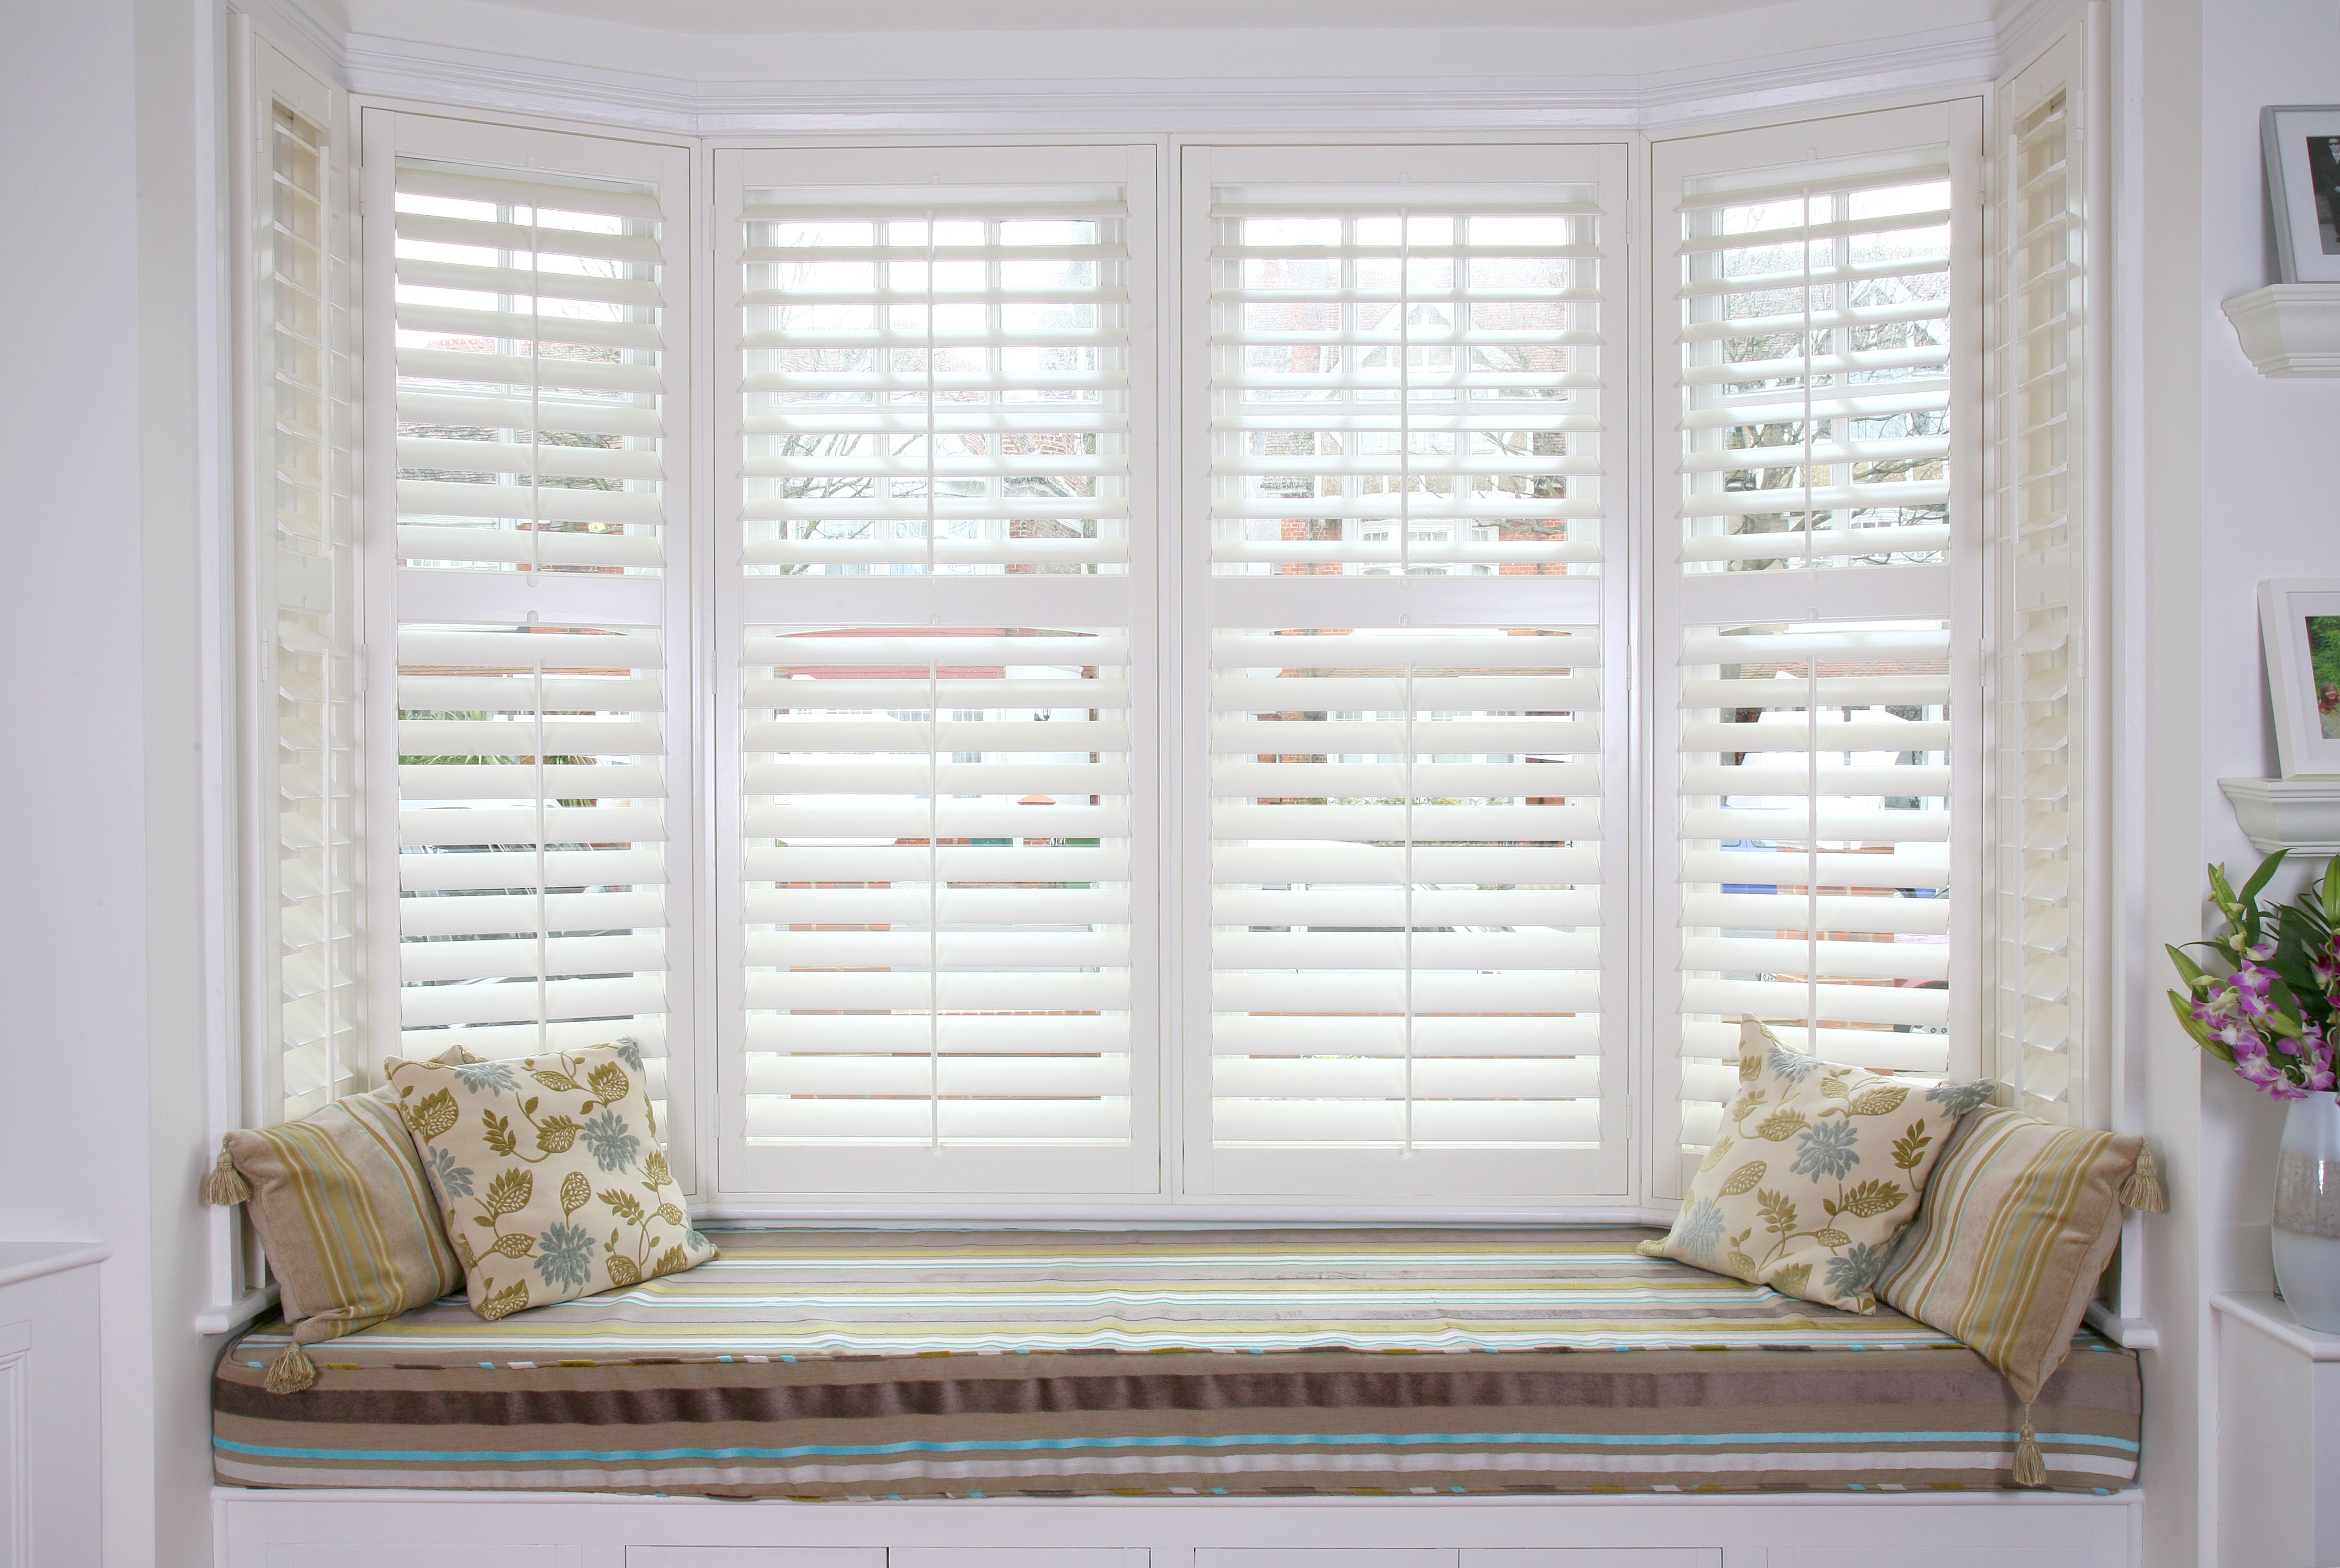 sun privacy bedroom perfect and solution interior pin composite for control the a wood shutters in are